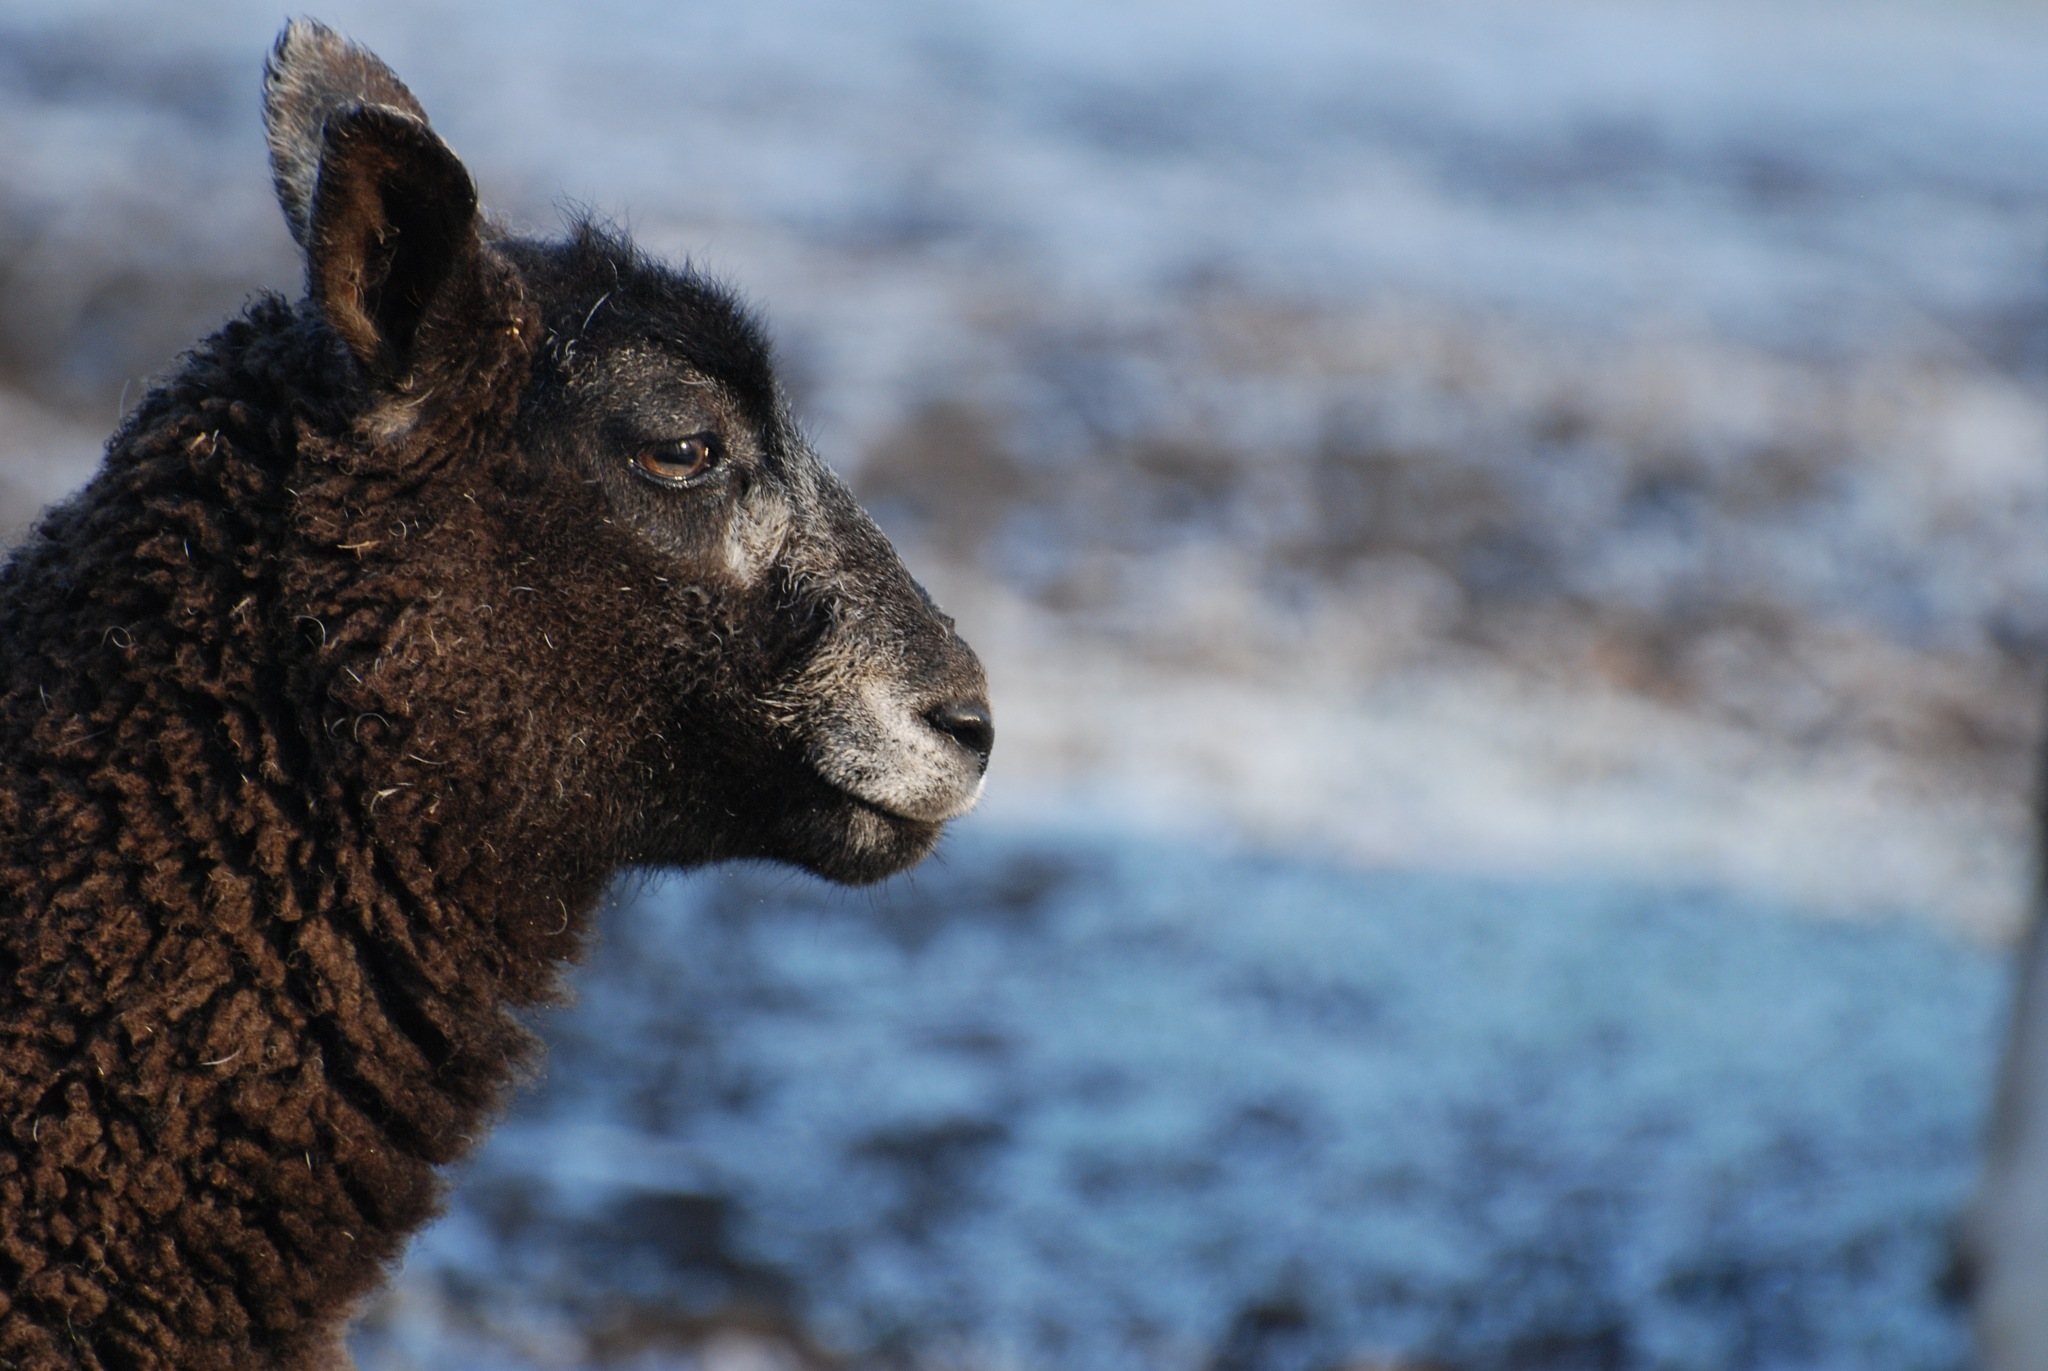 Sheep by ilseBodewes